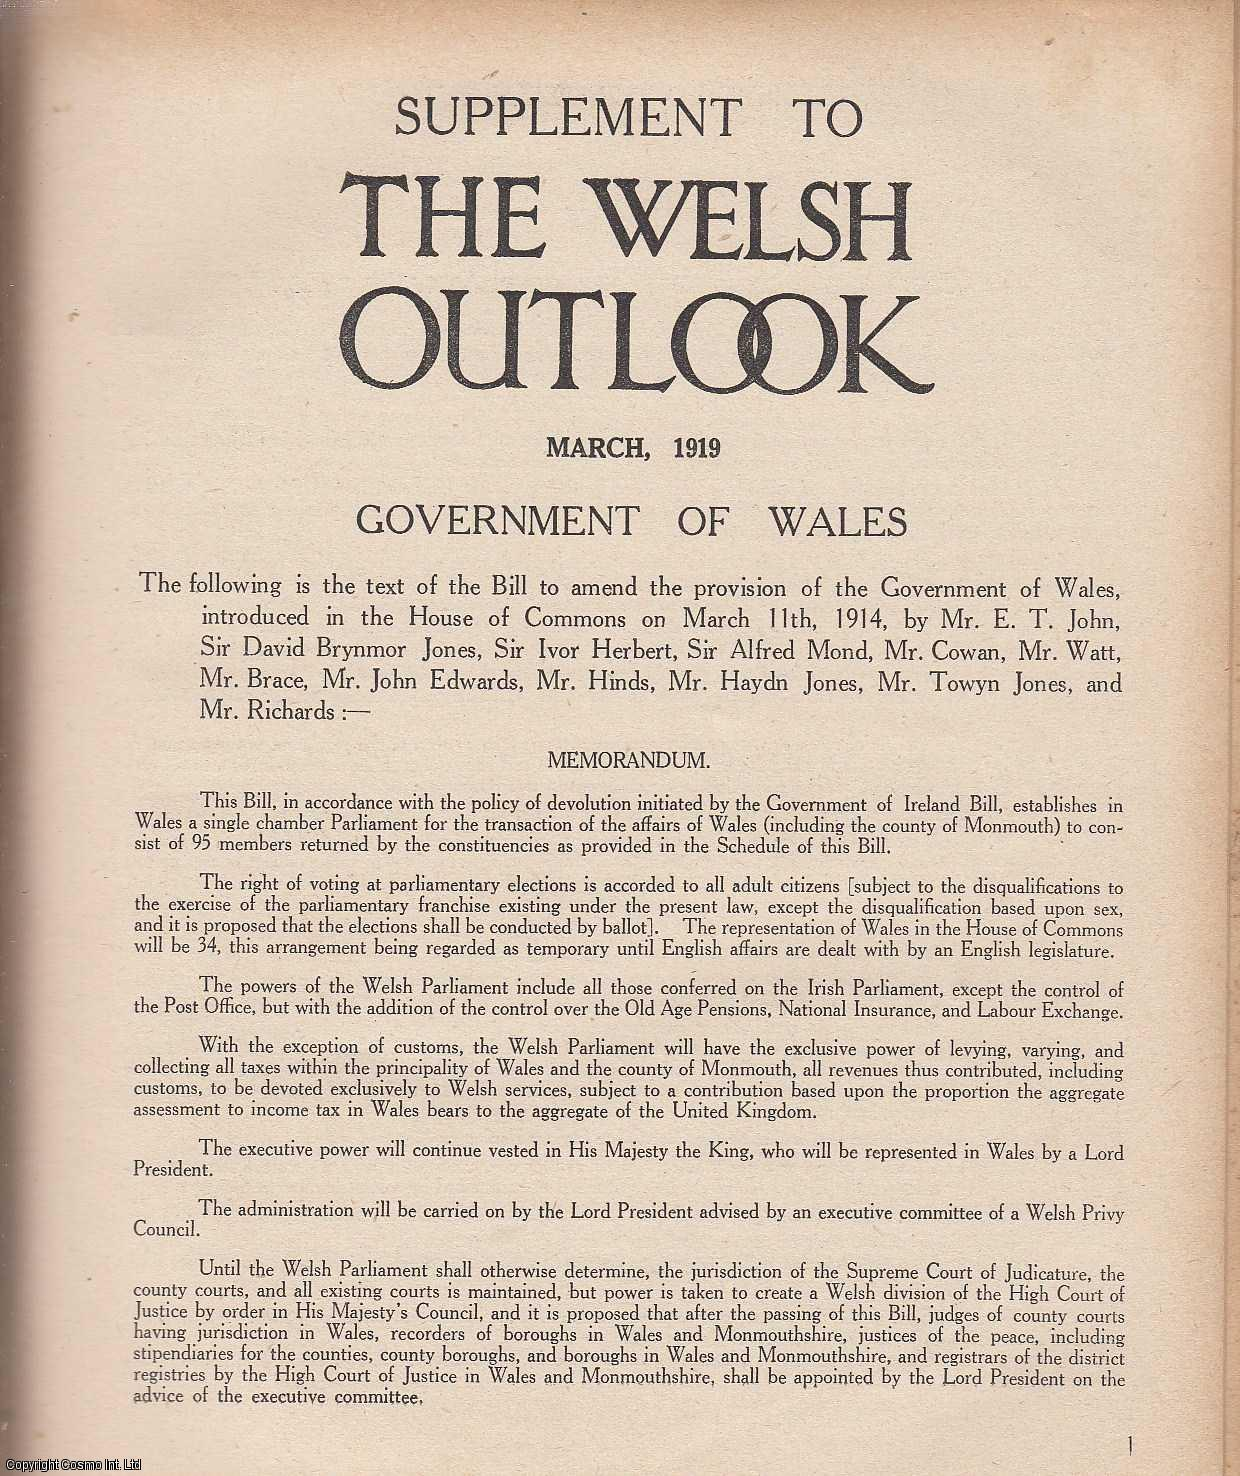 The Welsh Outlook. A Monthly Journal of National Social Progress, Supplement, March 1919. Government of Wales. The text of The Bill to amend the provision of Government, by Mr. E.T. John, and others., Thomas Jones (Editor)